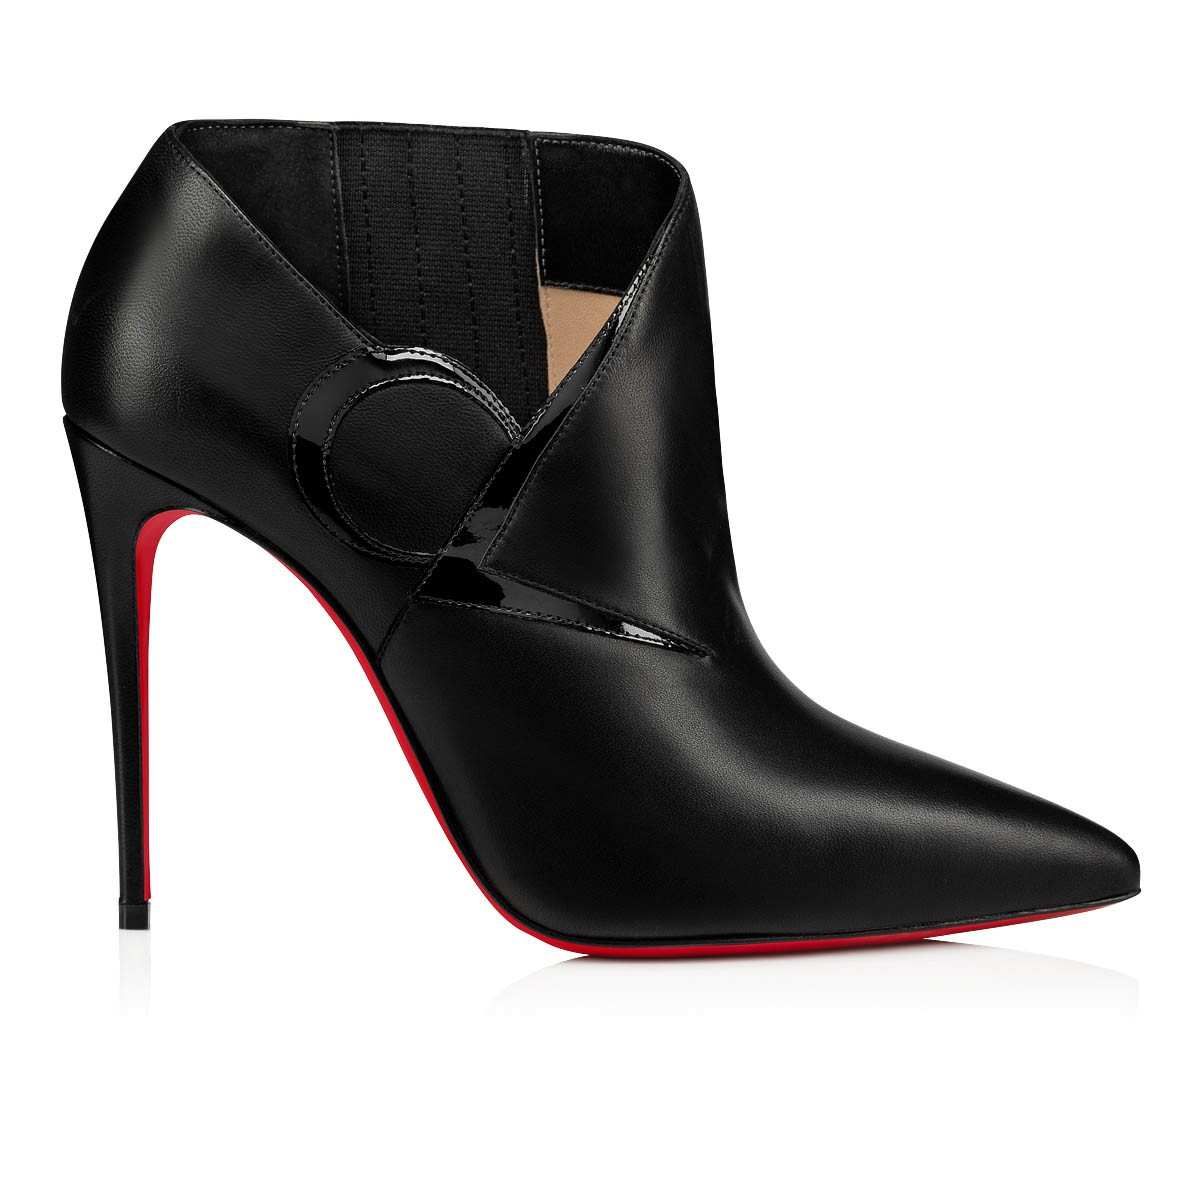 Shoes - Cl Bootie - Christian Louboutin